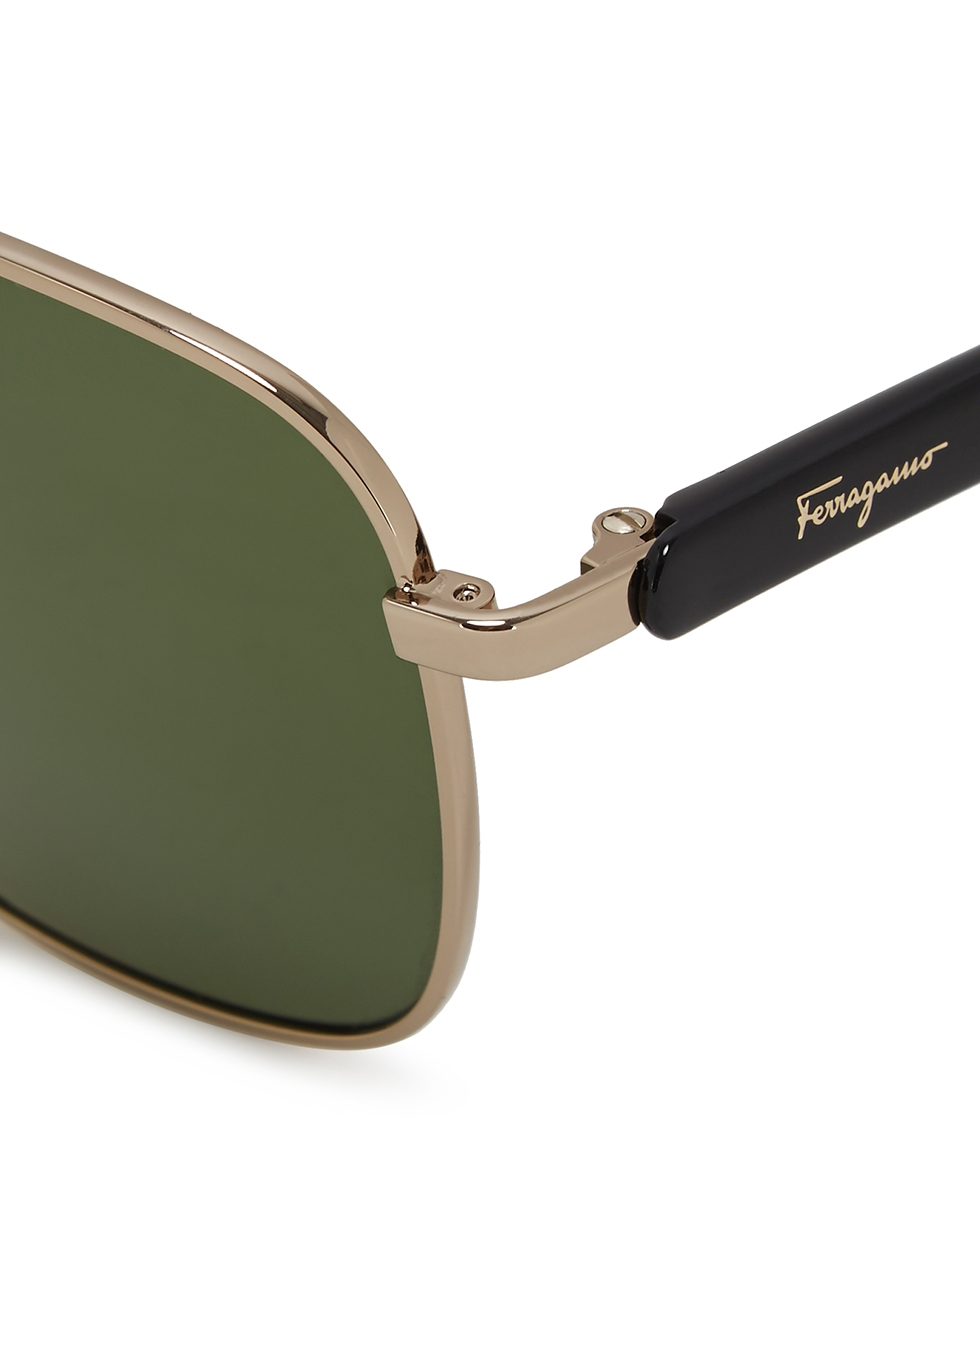 Gold-tone aviator sunglasses - Salvatore Ferragamo